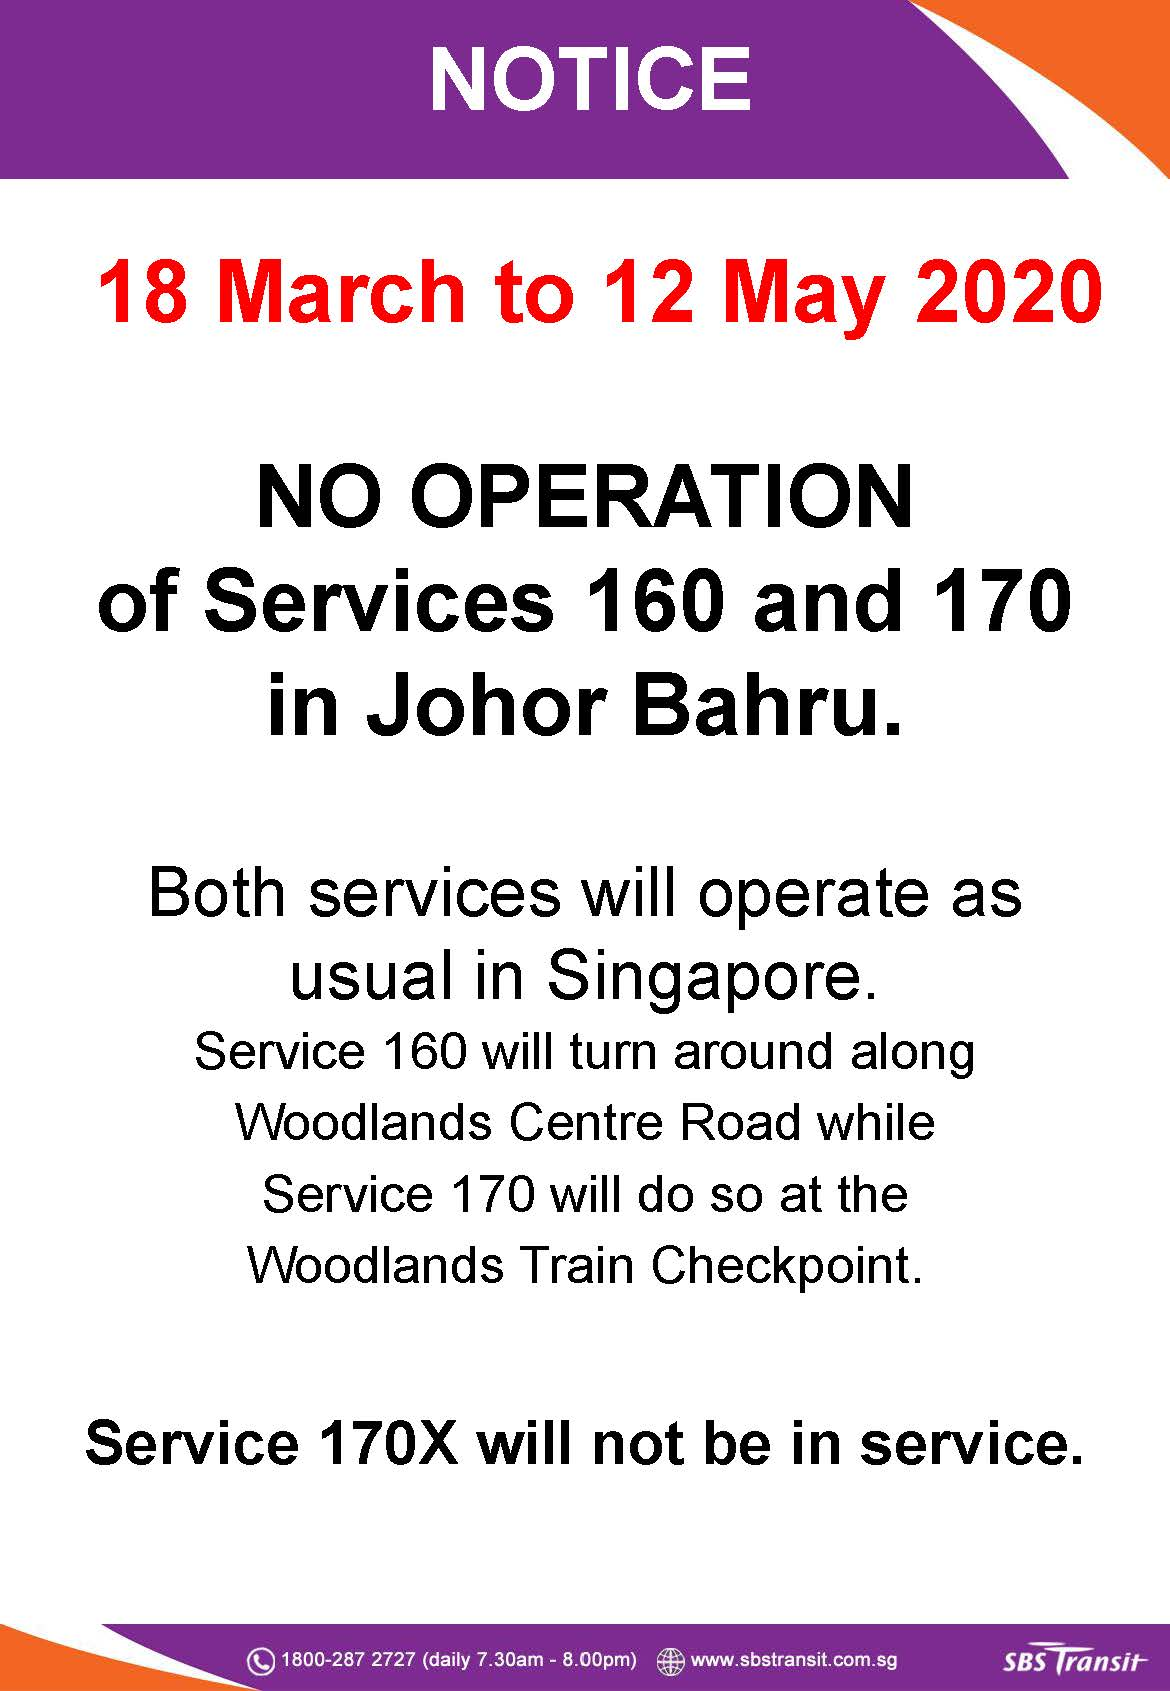 Third extension on suspension of service into Johor Bahru to 12 May 2020 for SBS Transit Bus 160, 170 & 170X